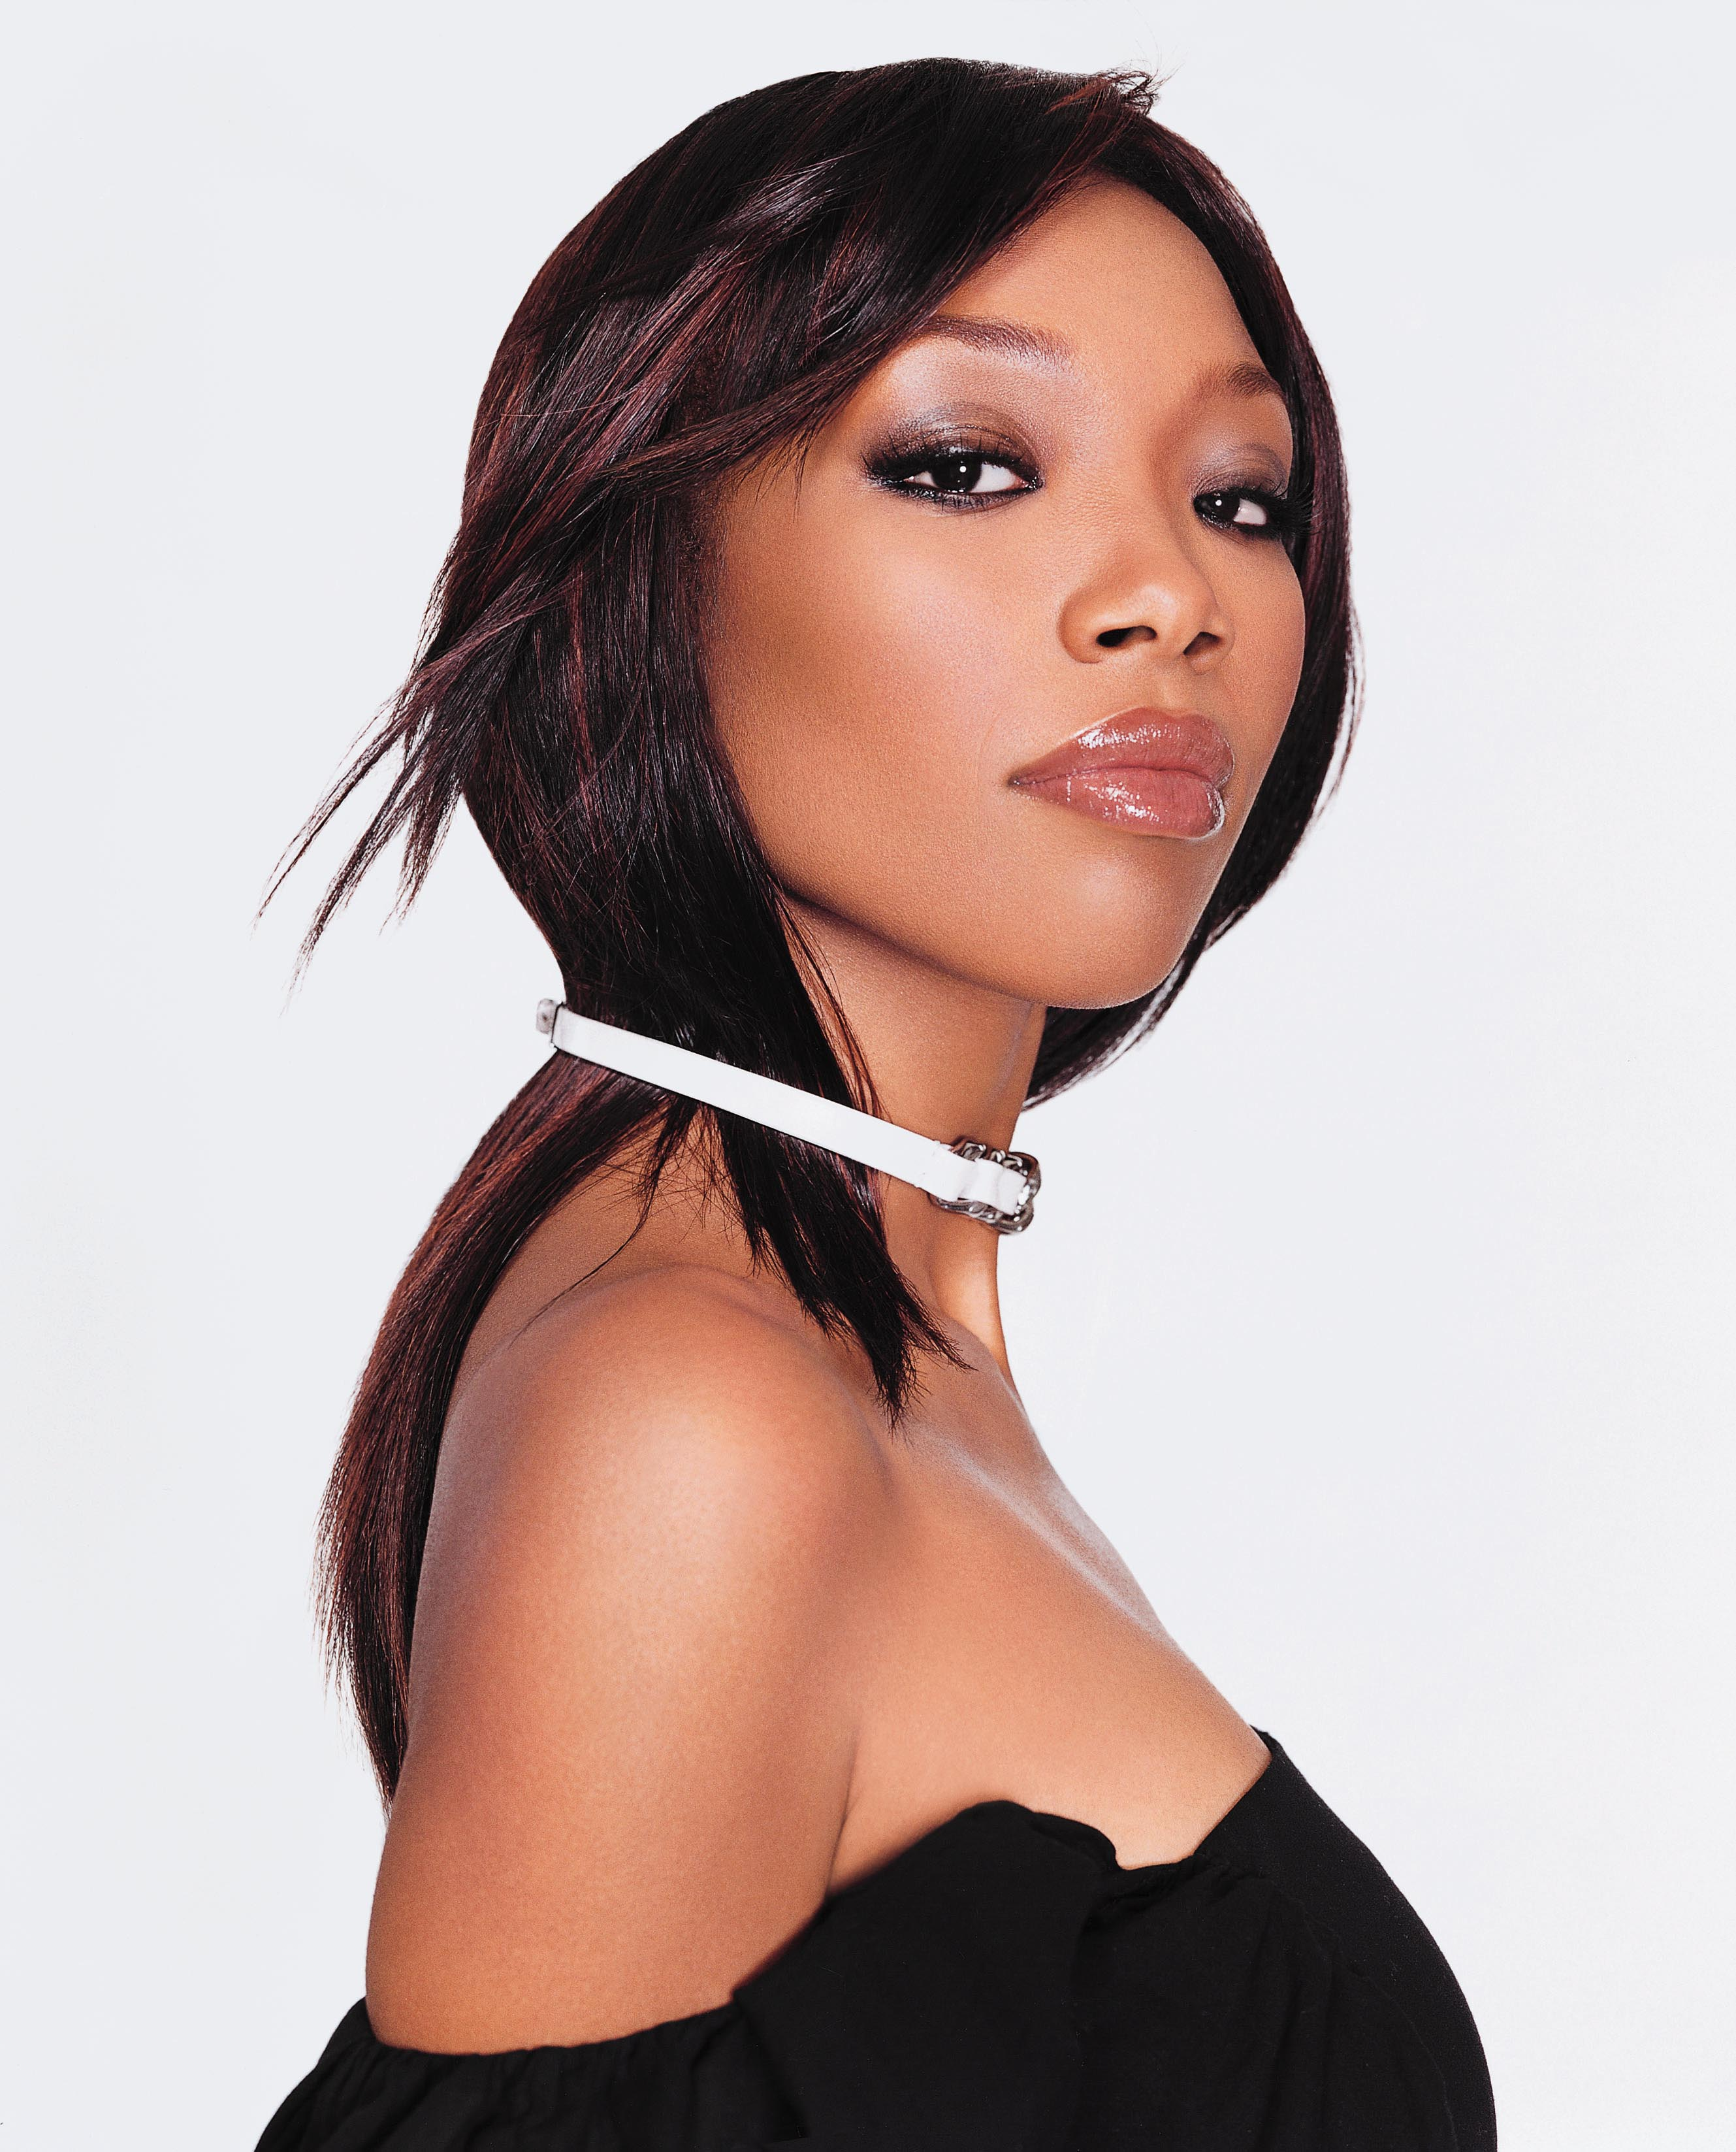 18 best images about Brandy Norwood Gallery on Pinterest | Brandy norwood, Singers and Bet awards